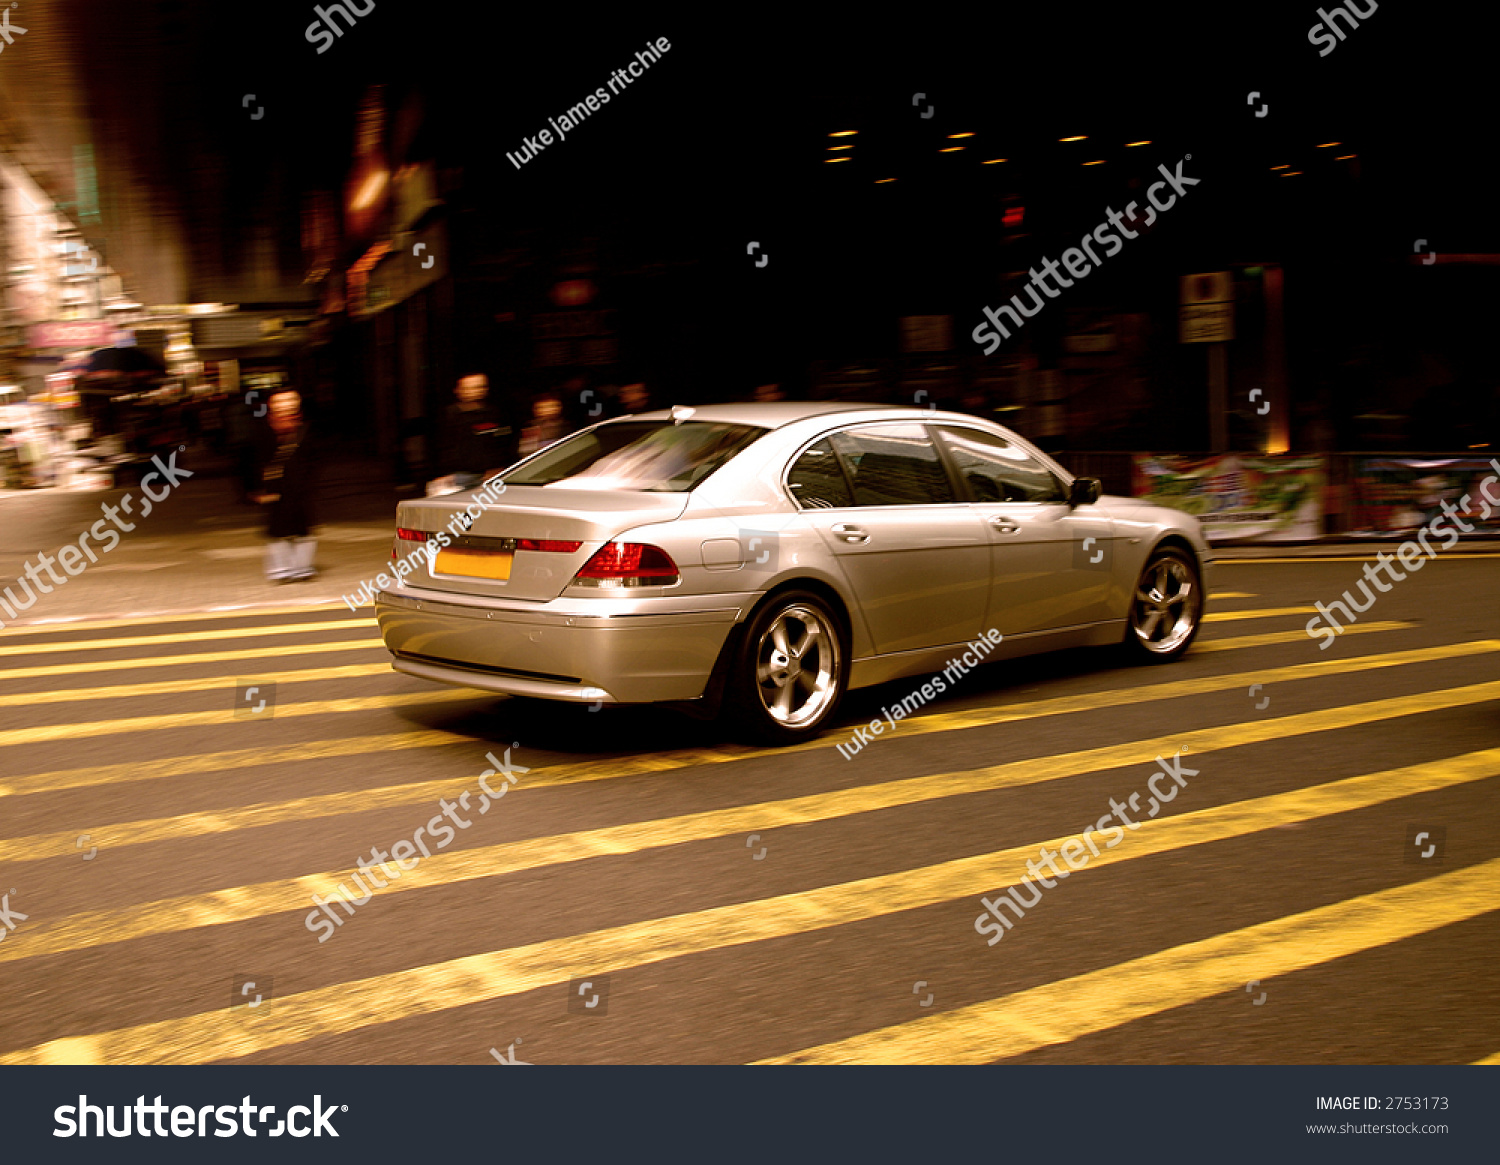 High End Luxury Cars: High End Luxury Car On Hong Kong Streets. Stock Photo